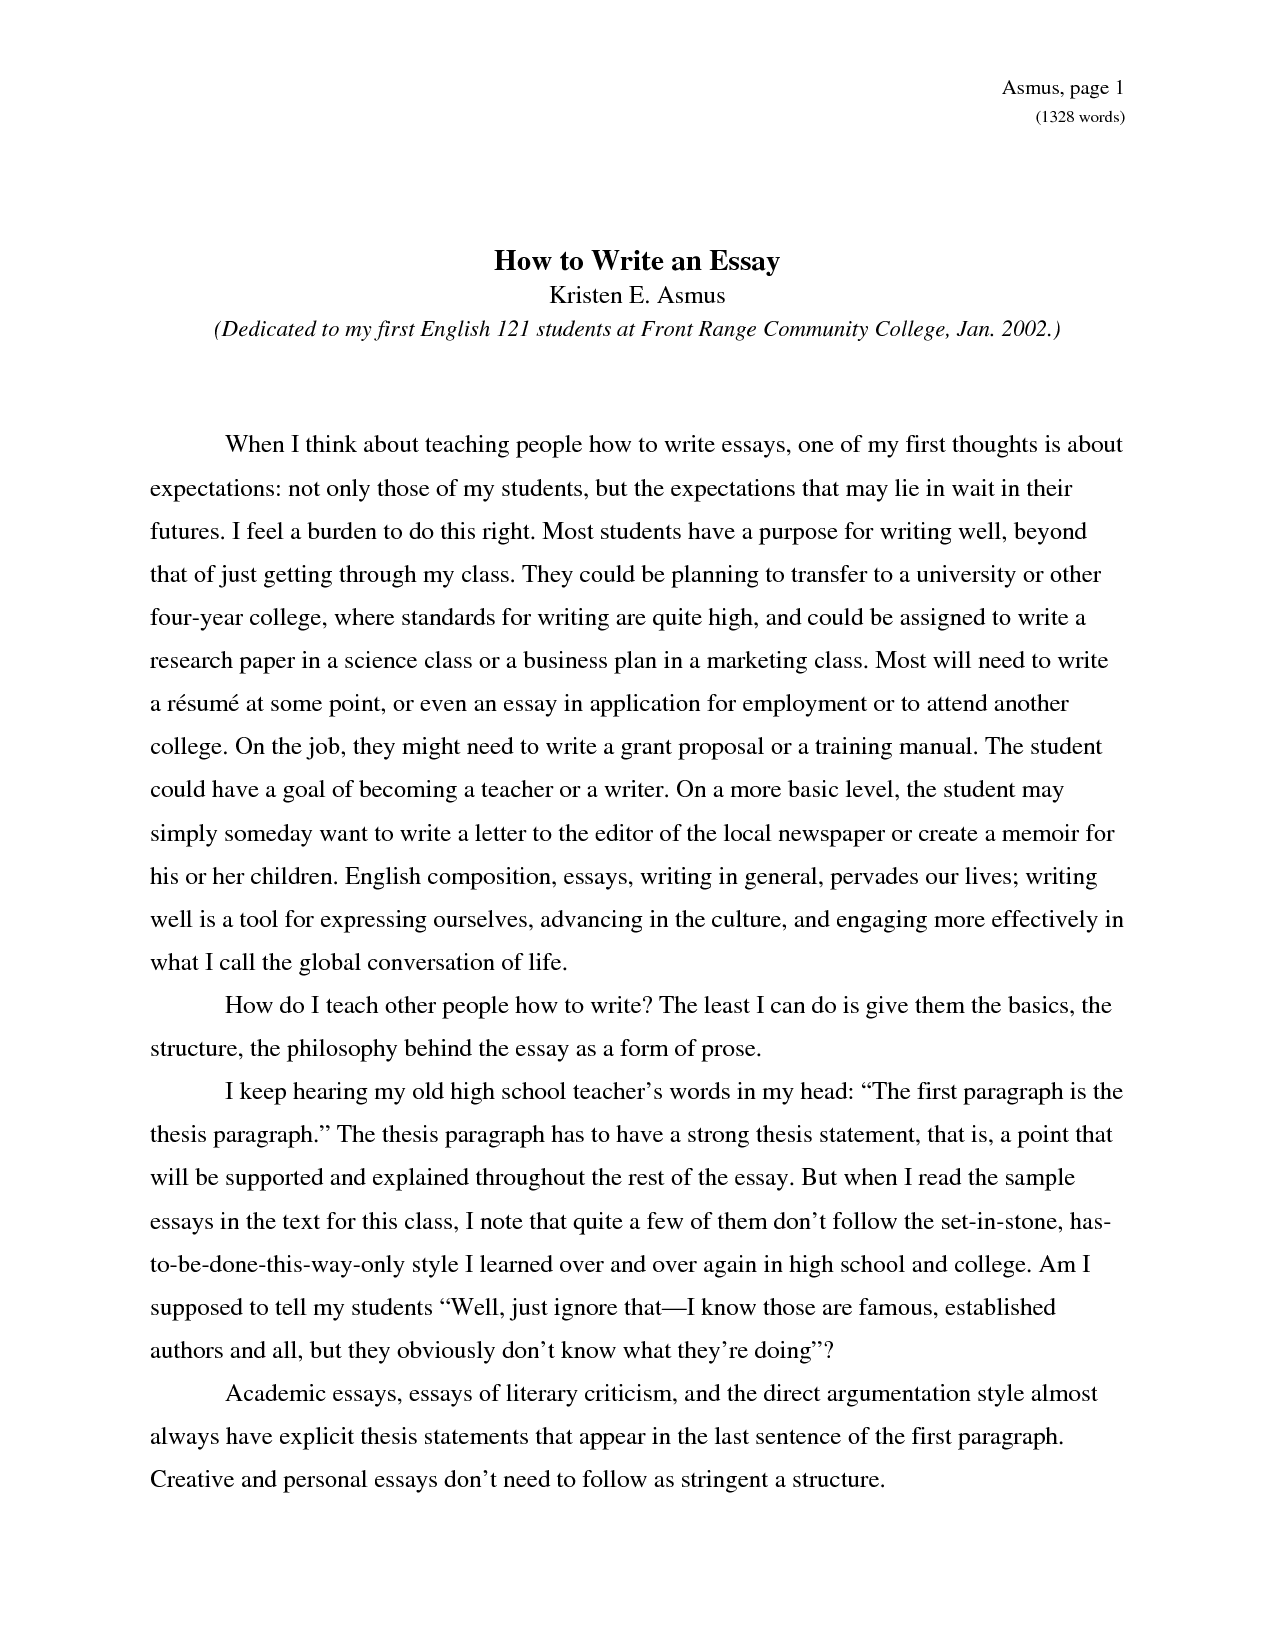 proper way to write an essay images mla format essay using proper way to write an essay how to write an essay obfuscata